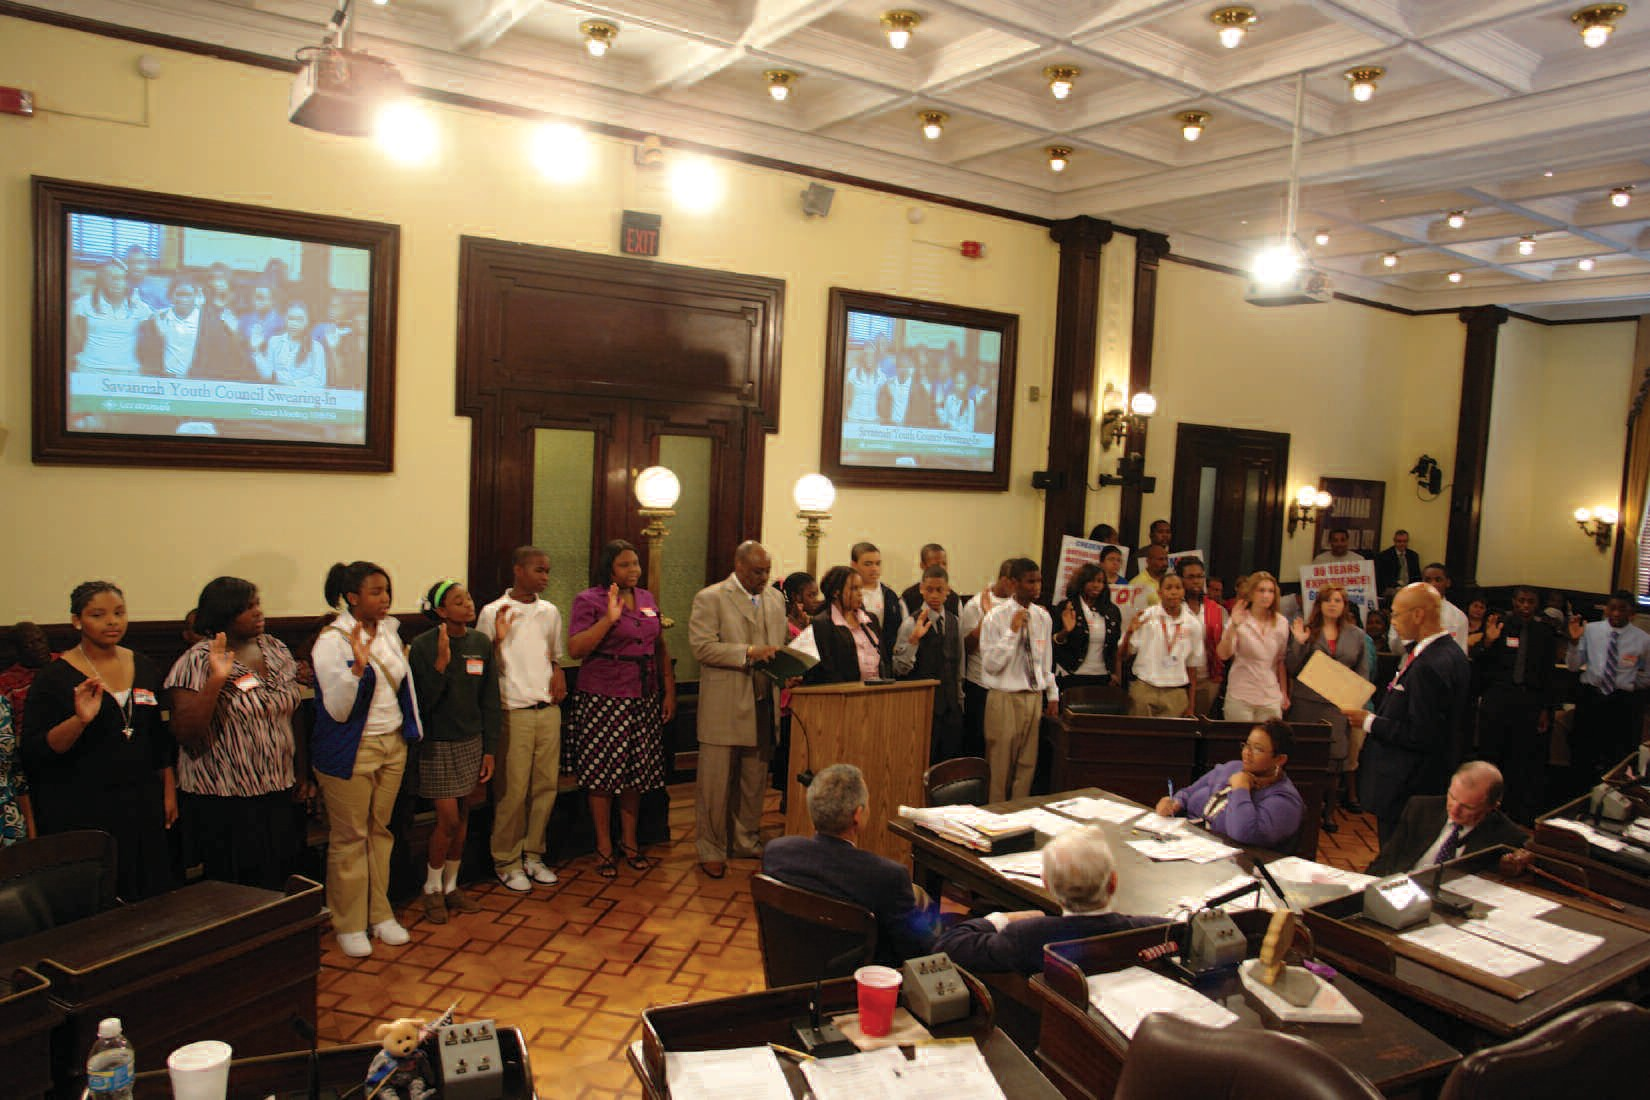 Members of the Savannah Youth Council being sworn in by Mayor Otis Johnson